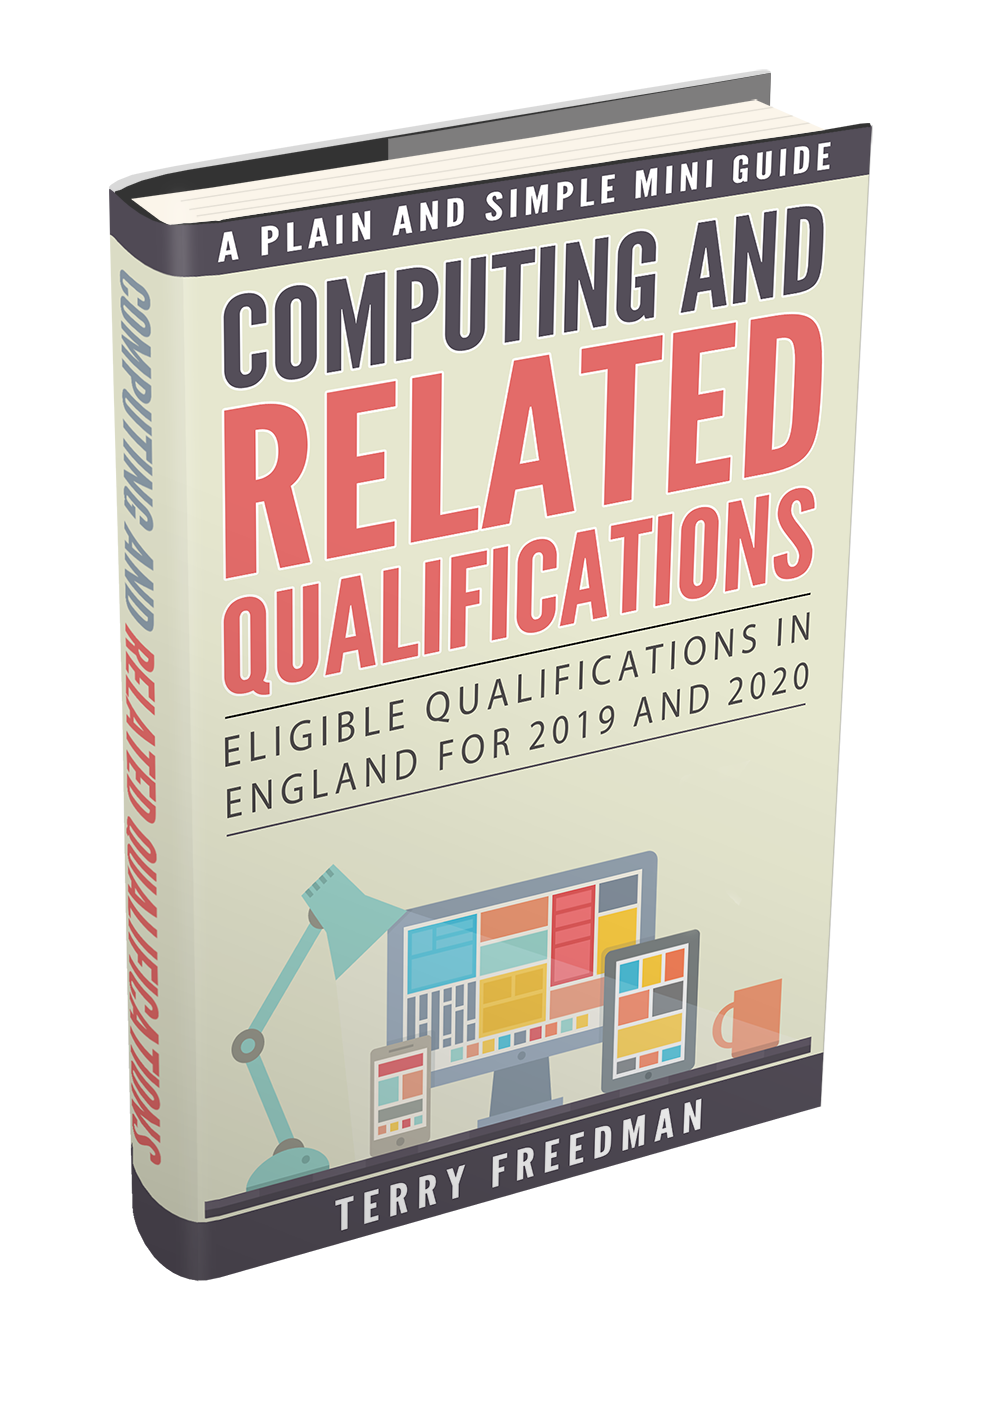 If you're looking for a course in computing or a related area, and you live in England, look no further! This ebook contains over 200 entries all in one place.